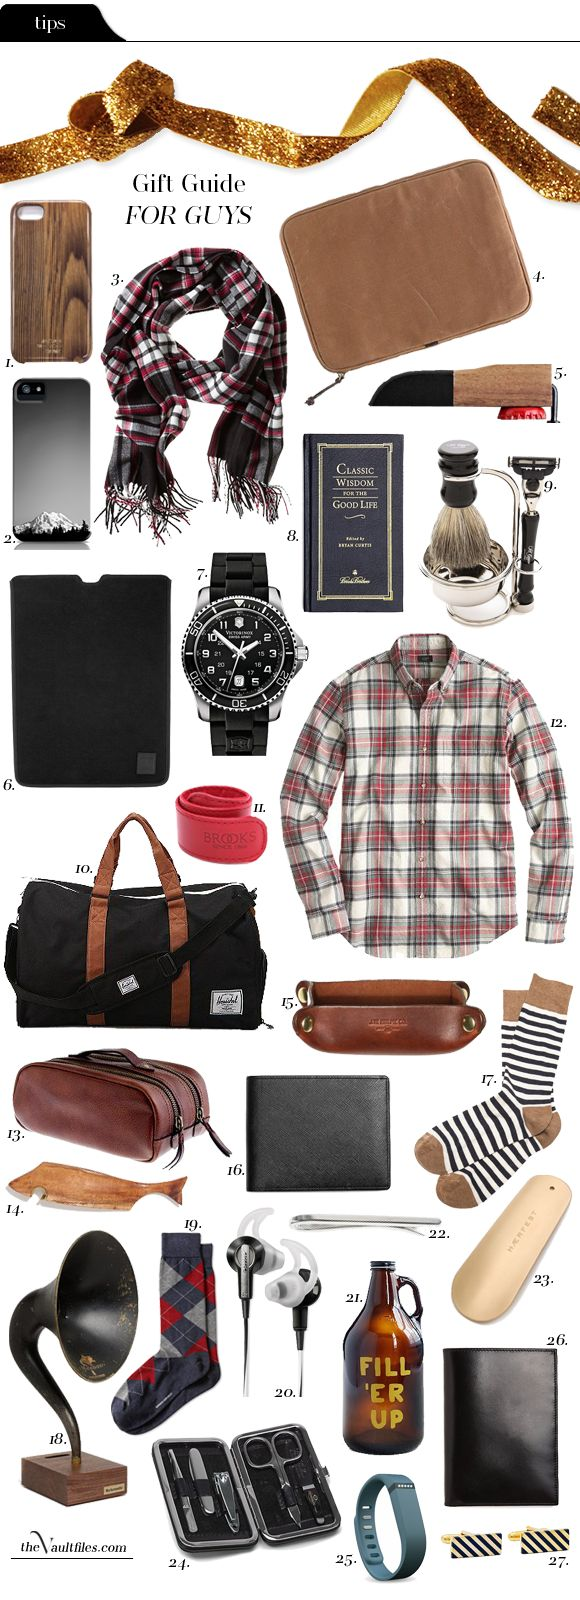 The Vault Files: Tips File: Holiday Gift Guide - For the Guys